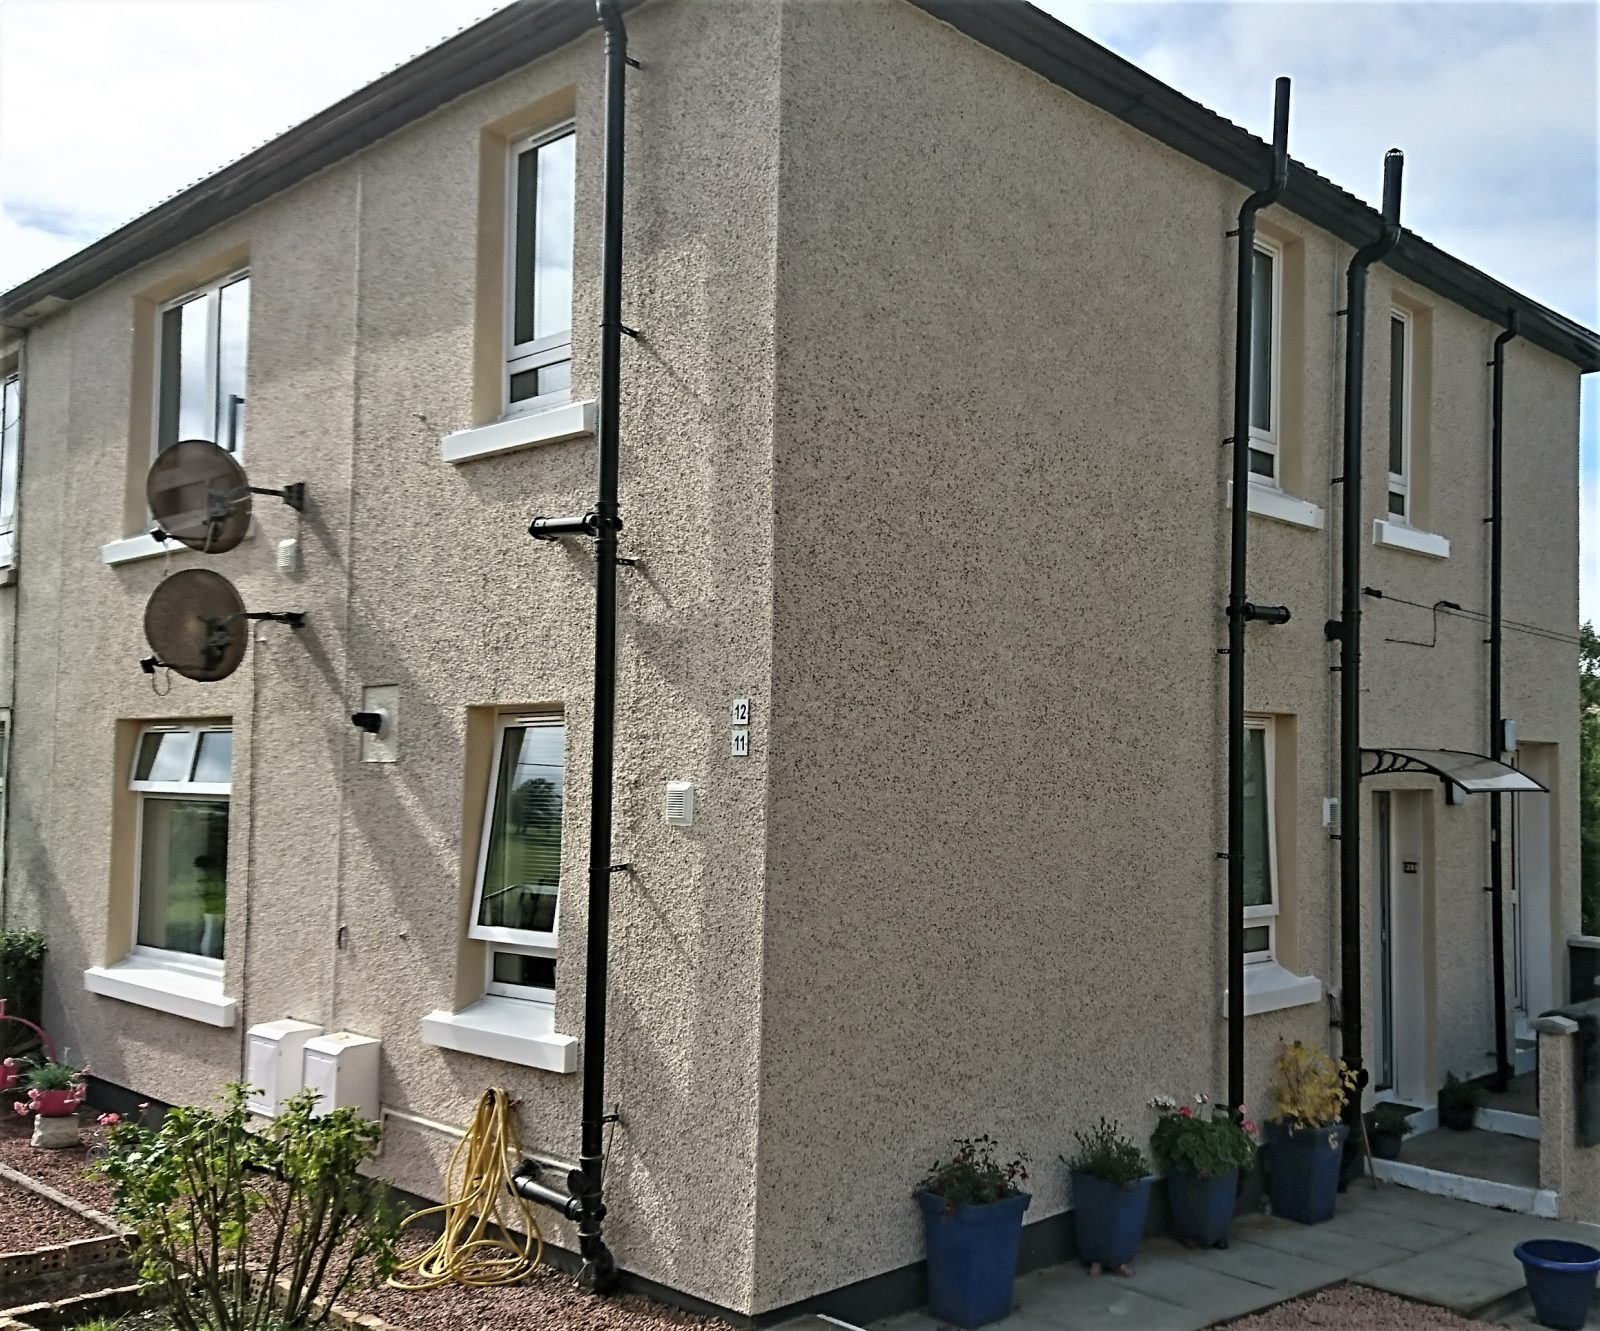 roughcast-render-Edinburgh-pepple-dash-Edinburgh